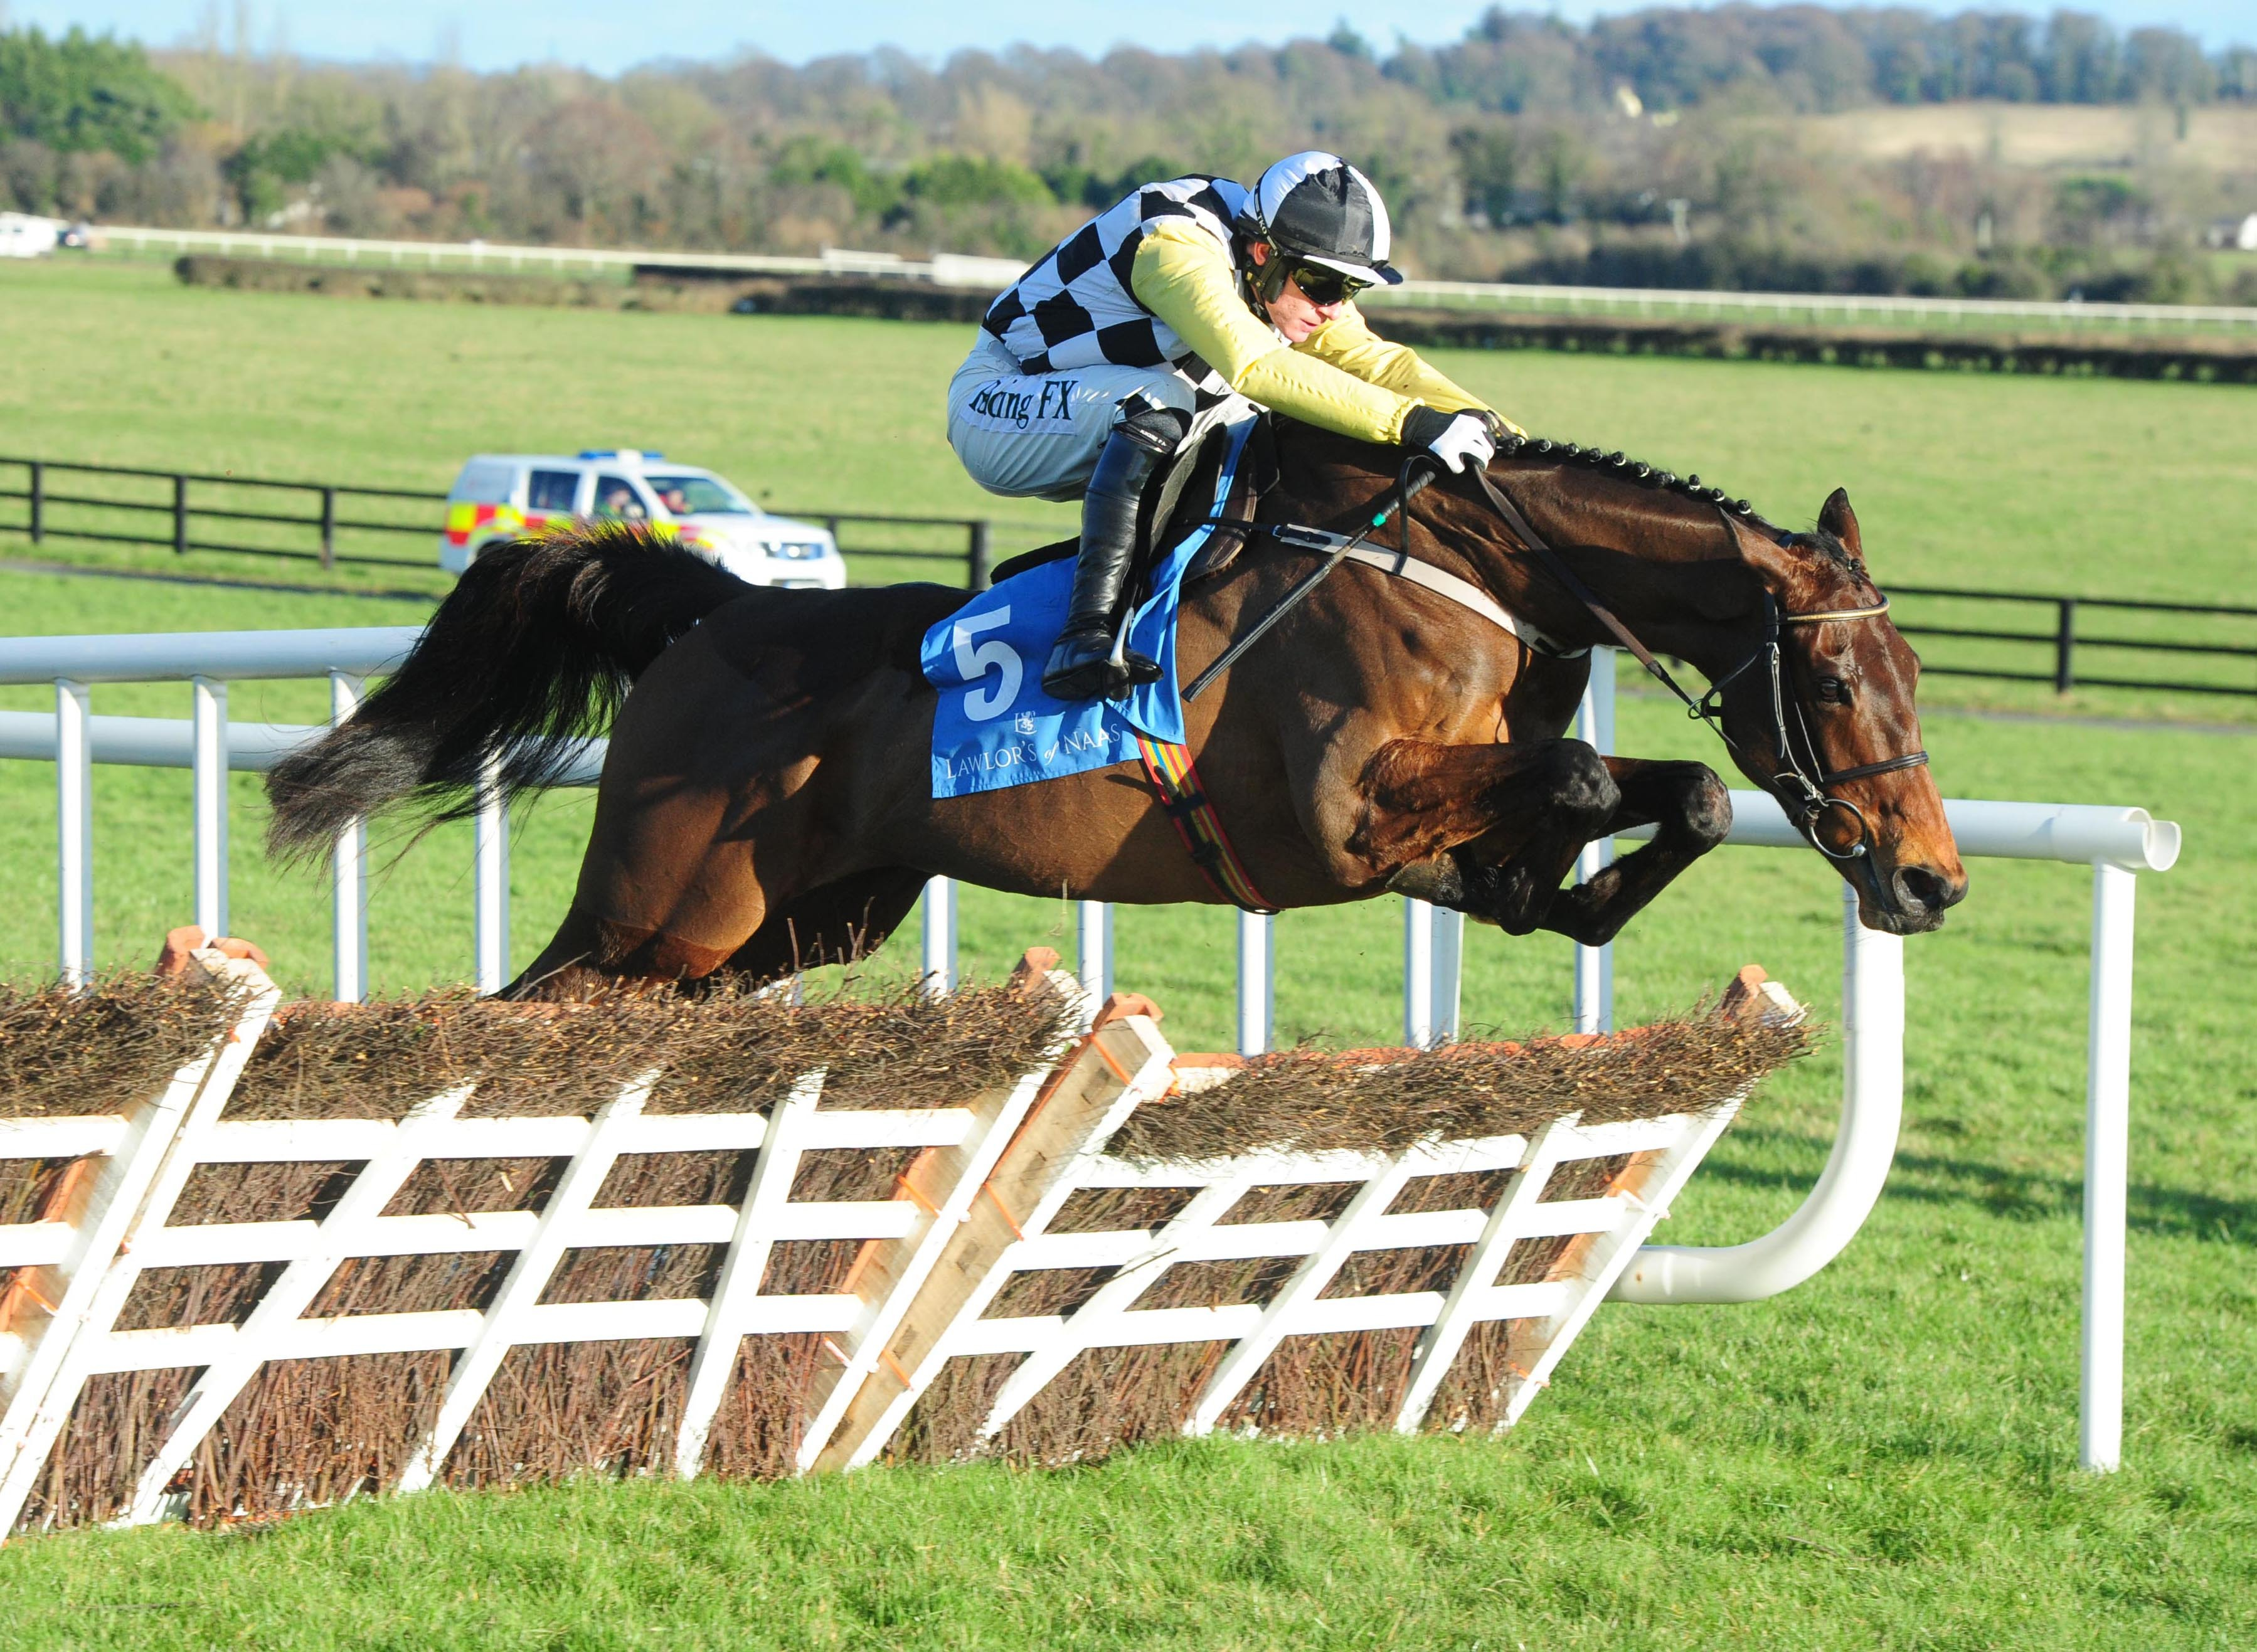 I'm hoping Next Destination turns into an RSA Chase contender this season